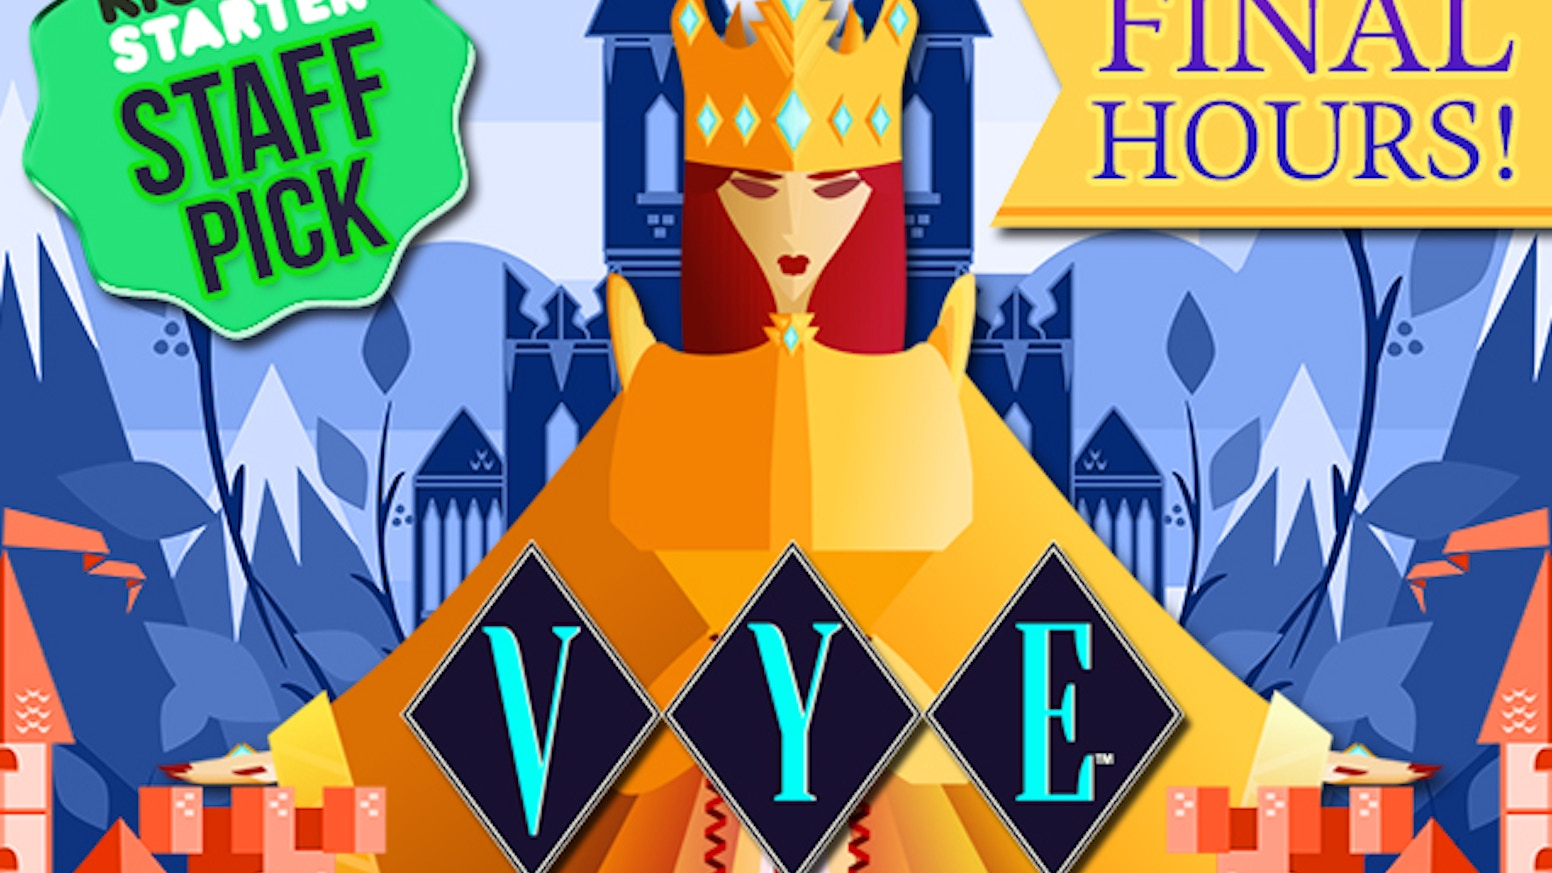 Vye for control of the kingdom in this beautifully illustrated, strategy card game for 2 - 5 players.